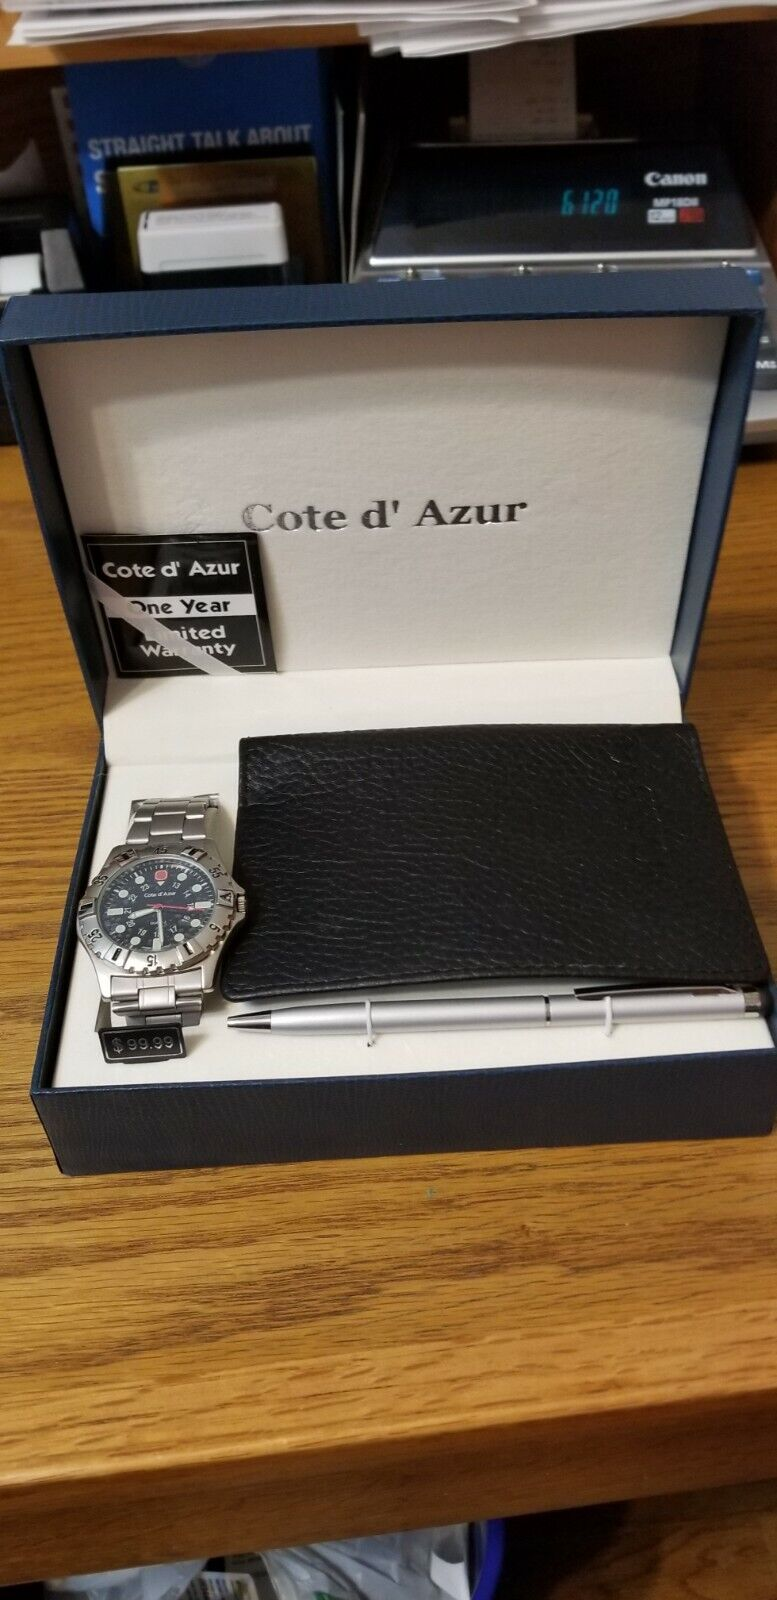 COTE D' AZURE SET OF WATCH, PEN AND PASSPORT WALLET . BRAND NEW IN BOX